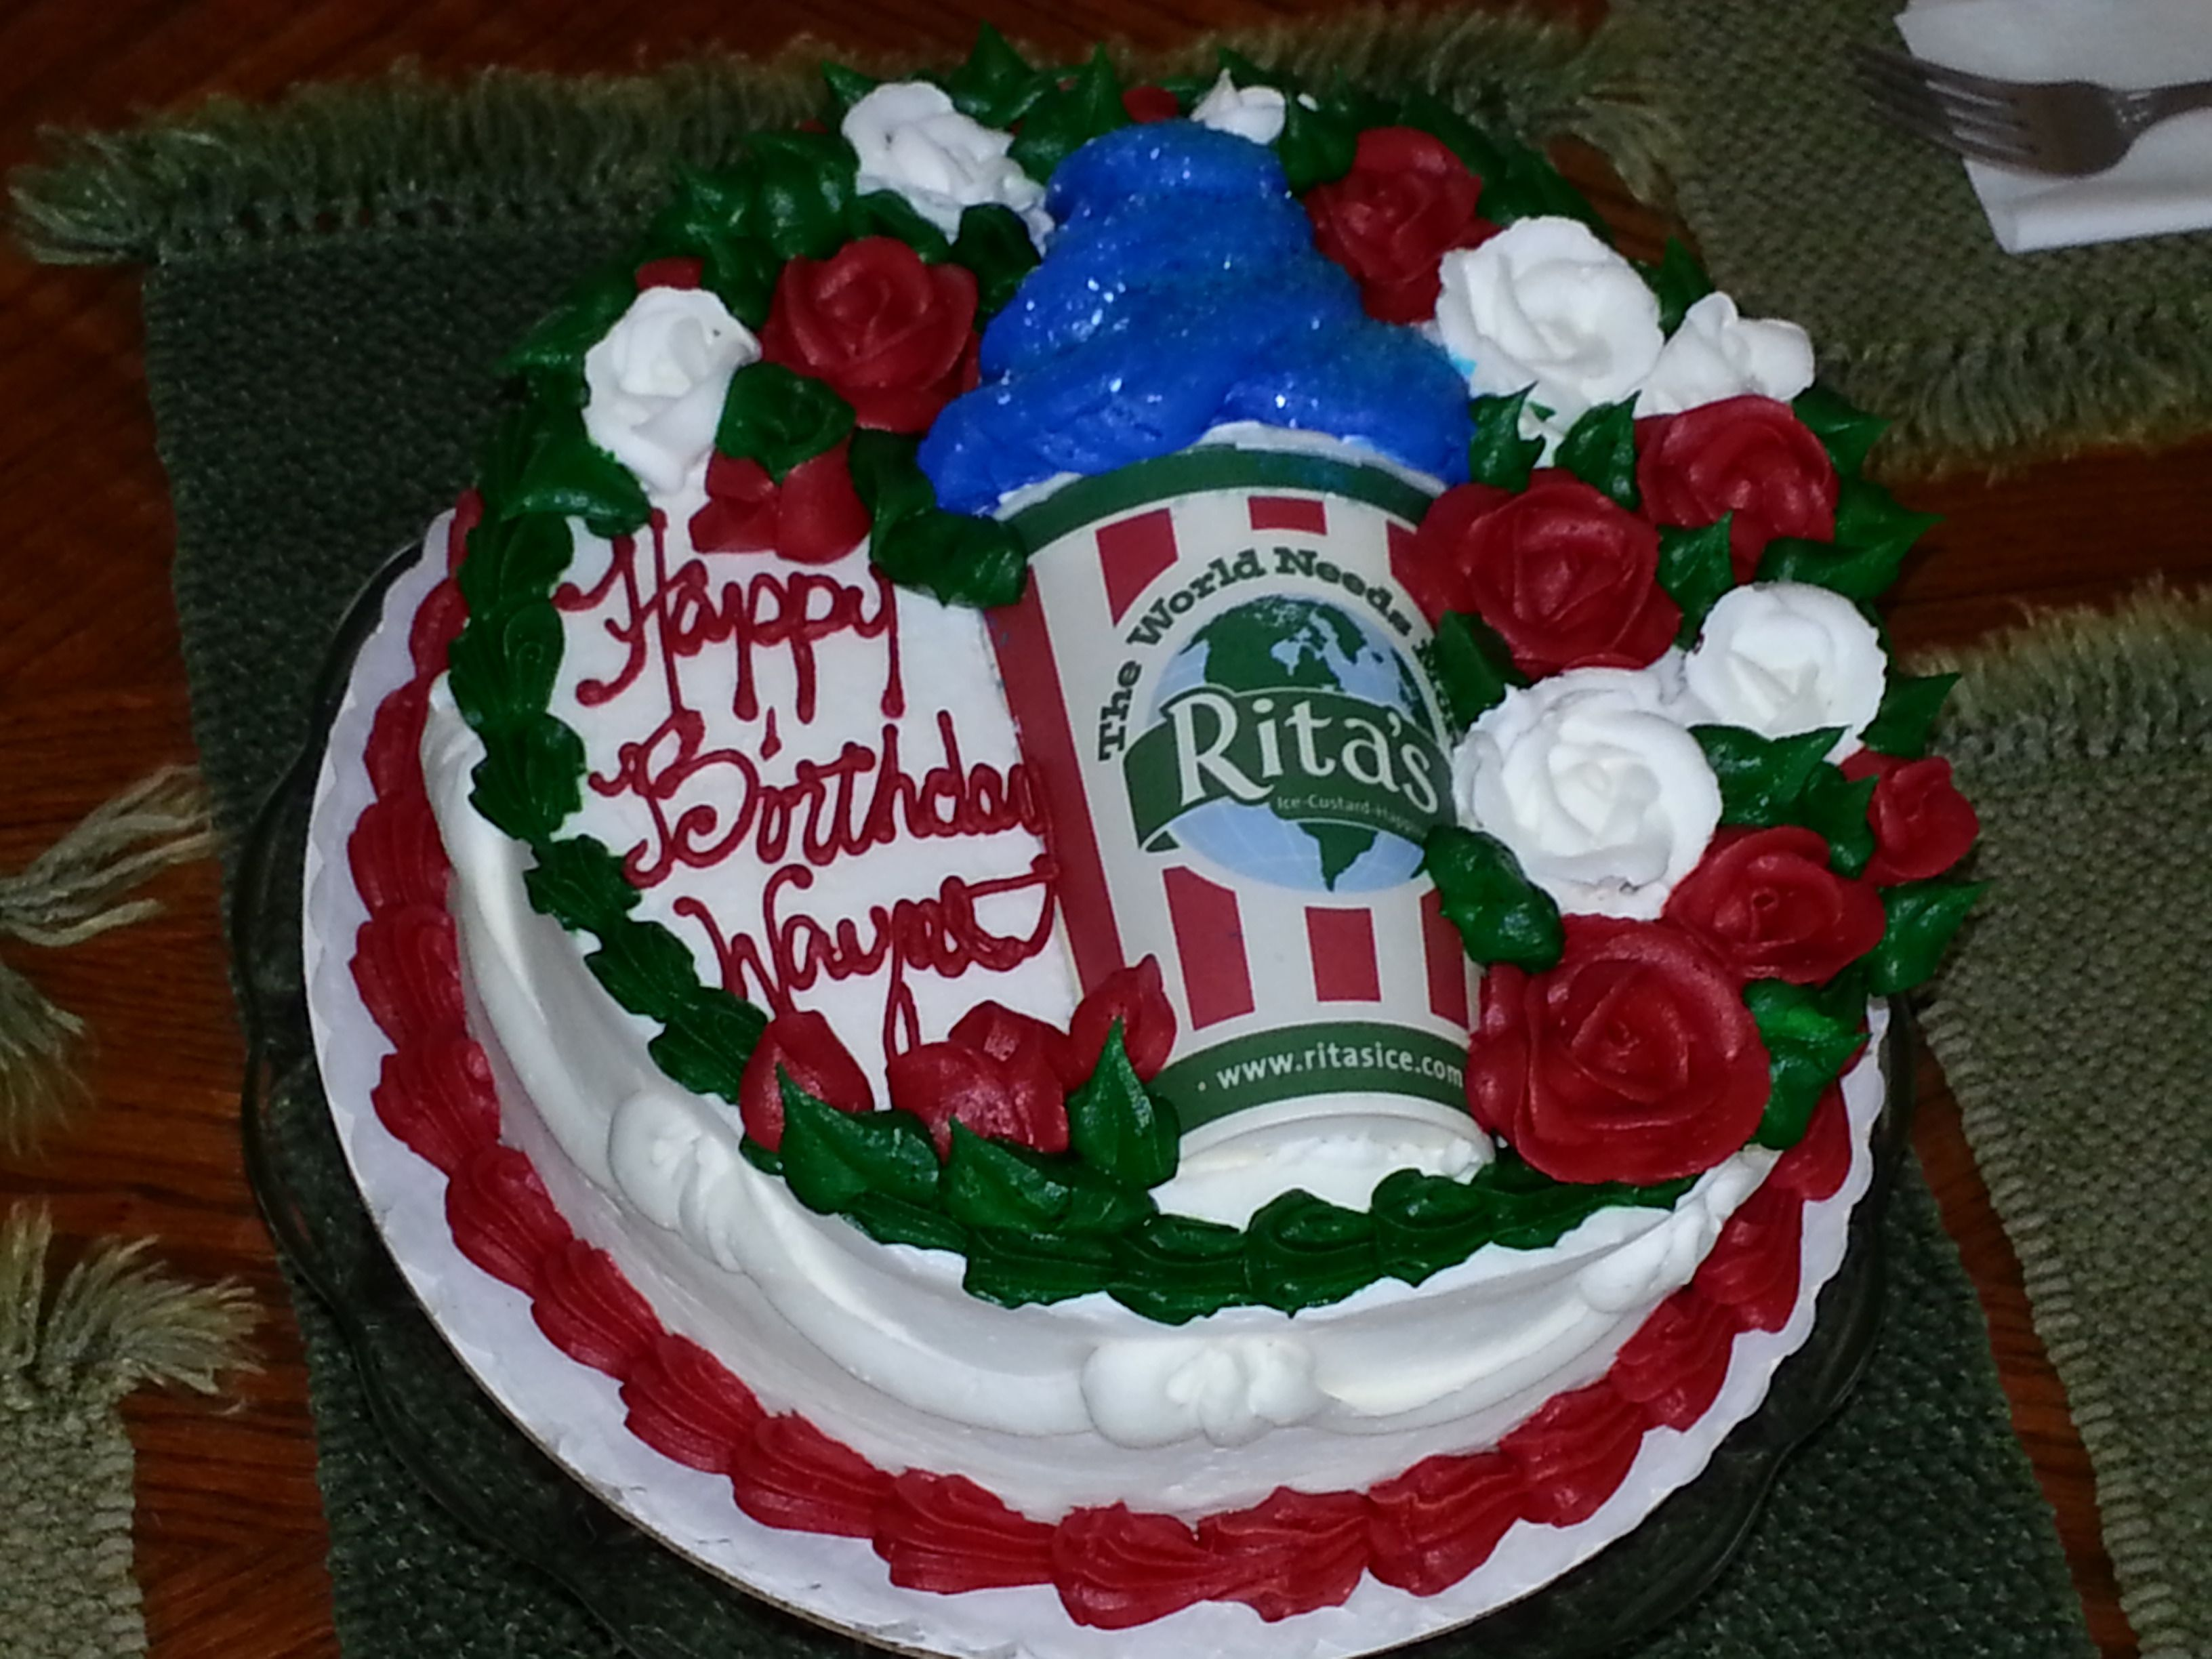 Fabulous Ritas Italian Ice Birthday Cake For Hubby Baked At Local Bakery Funny Birthday Cards Online Barepcheapnameinfo